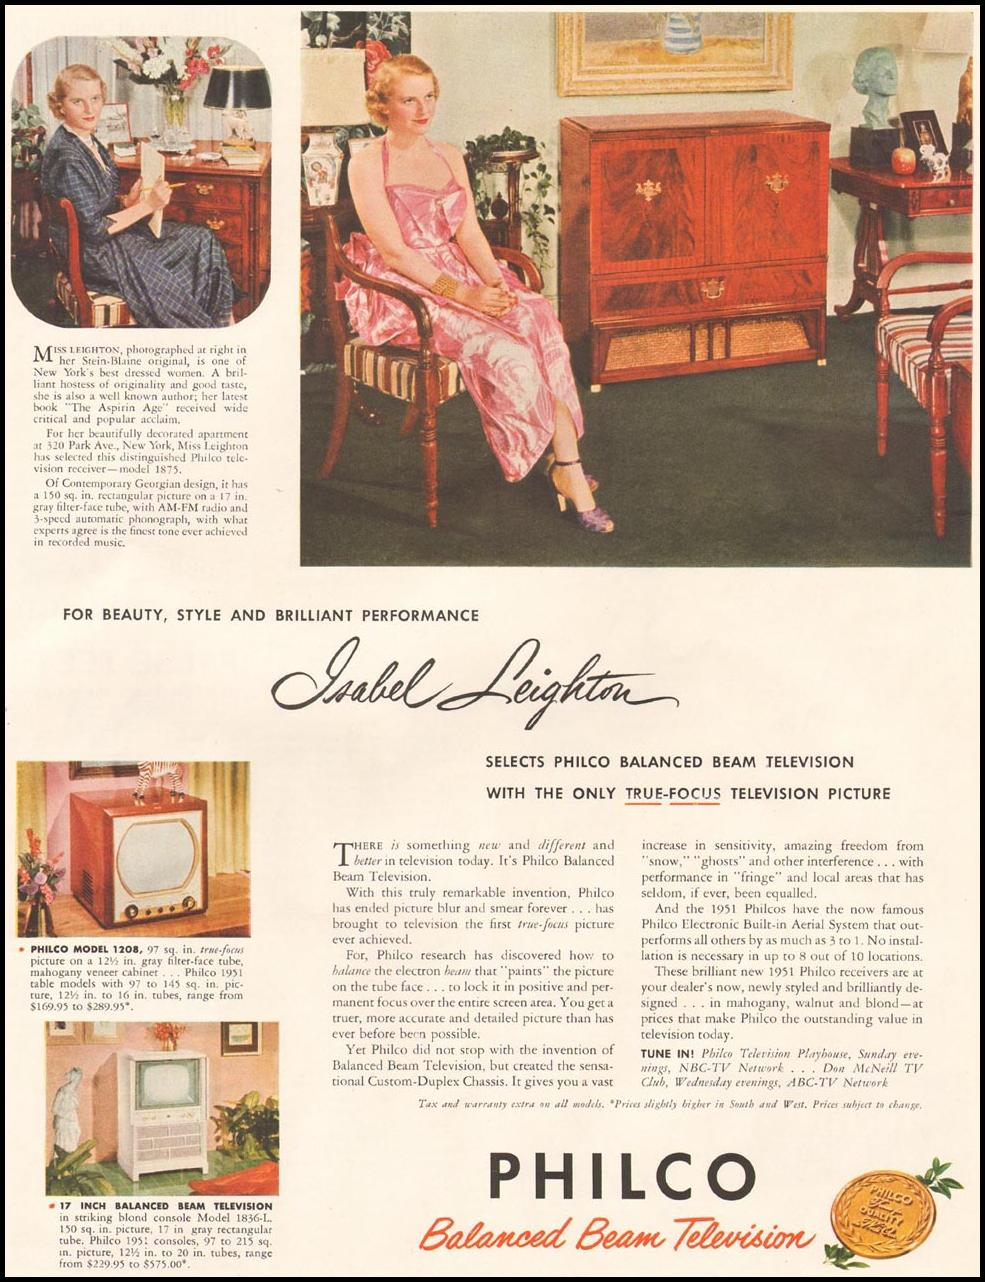 PHILCO BALANCED BEAM TELEVISION LADIES' HOME JOURNAL 11/01/1950 p. 95